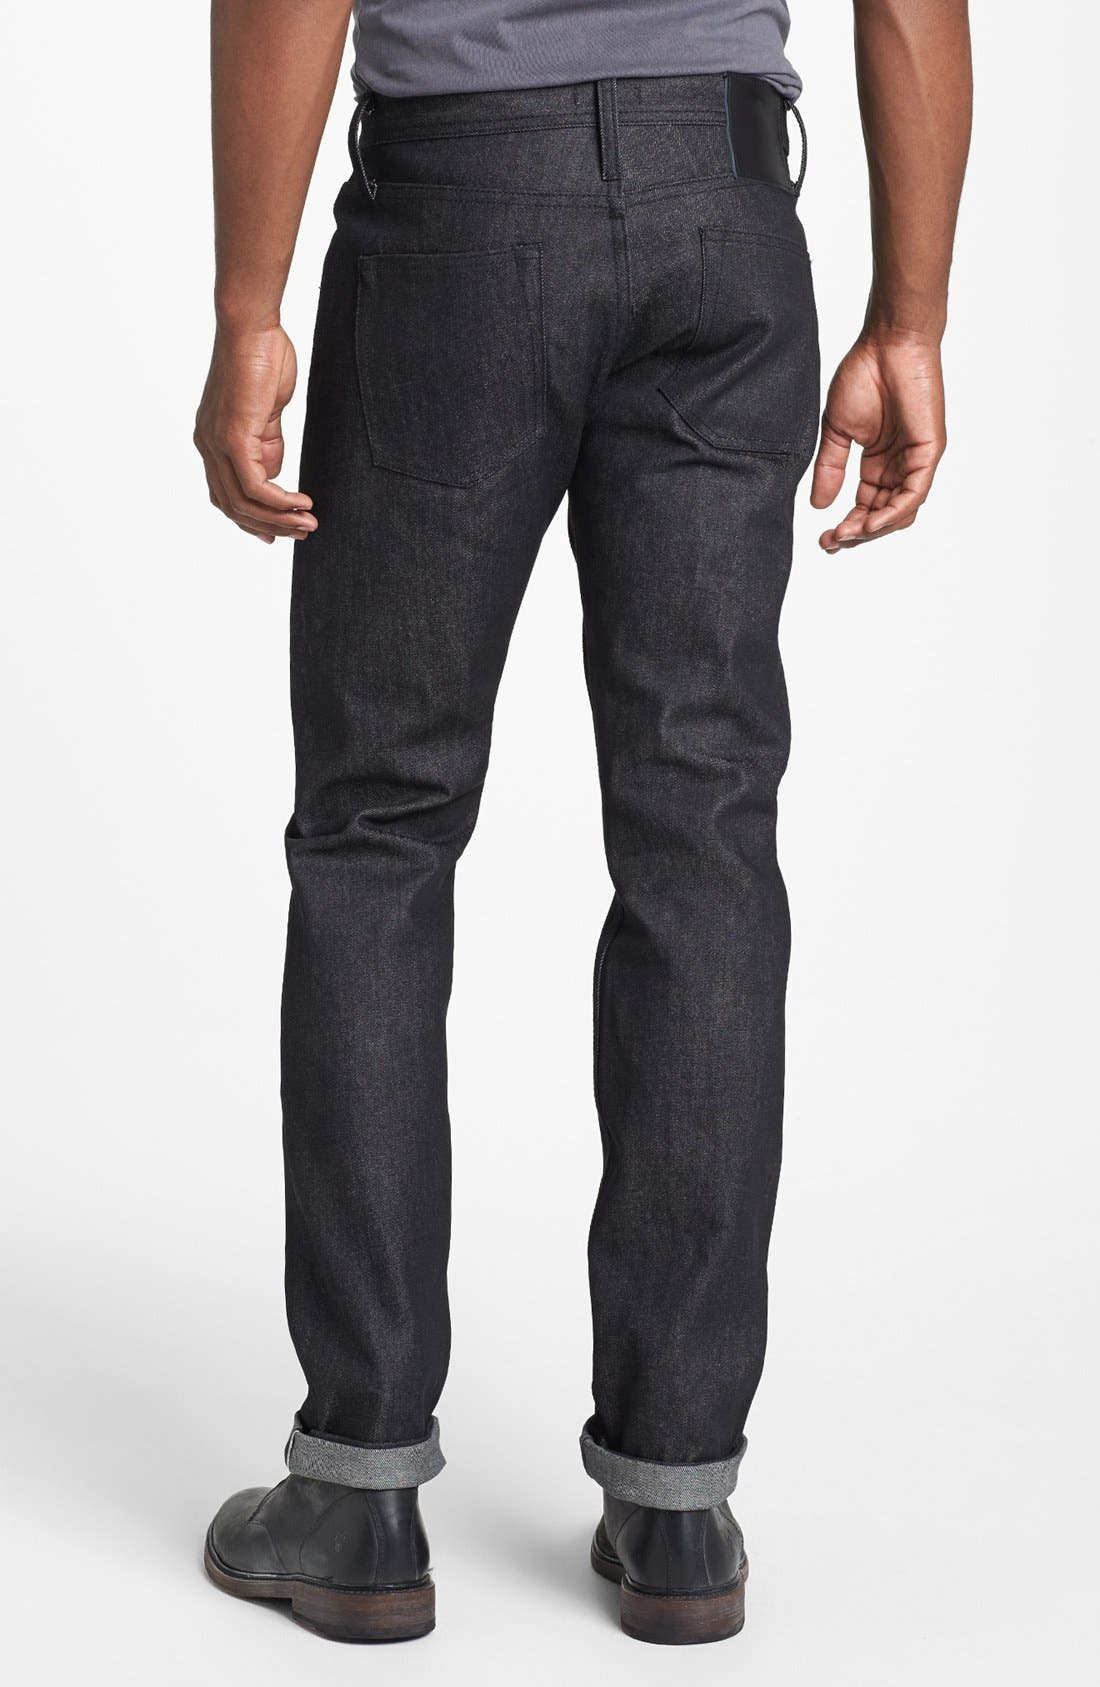 Alternate Image 1 Selected - The Unbranded Brand Skinny Fit Selvedge Jeans (Black)